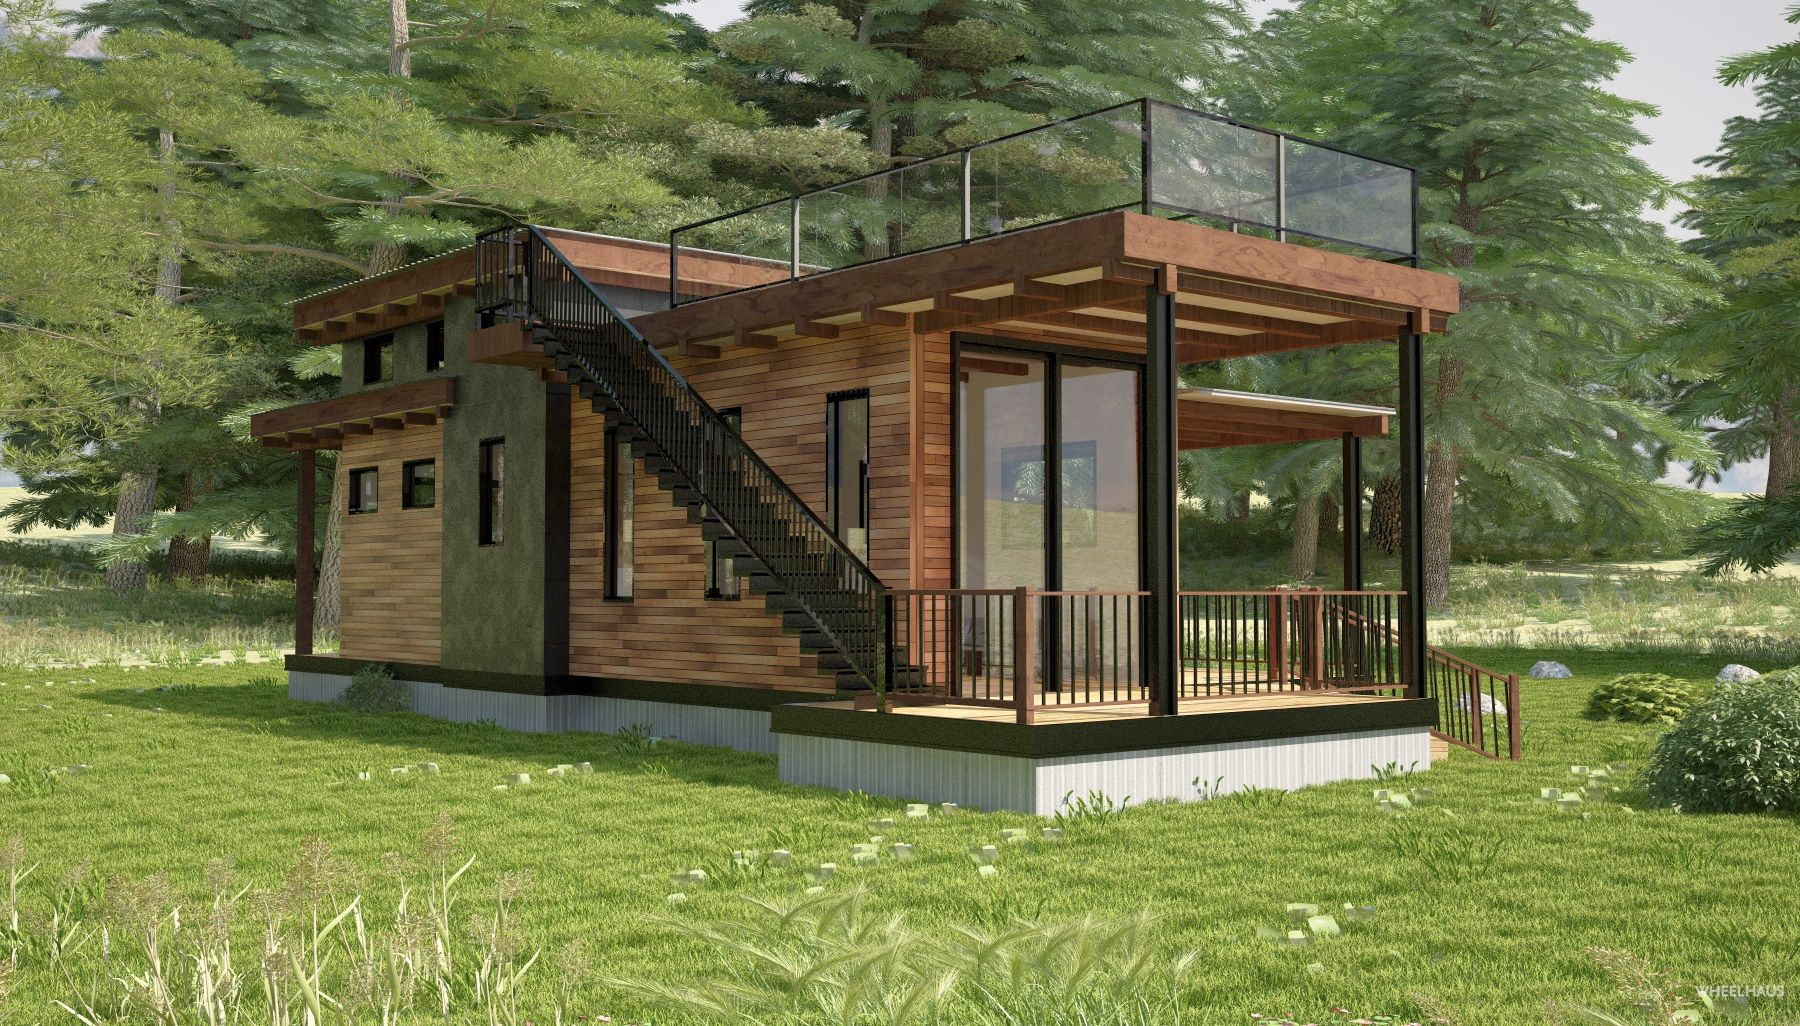 Flat Roof Caboose Flat Roof House House Roof Gable Roof Design